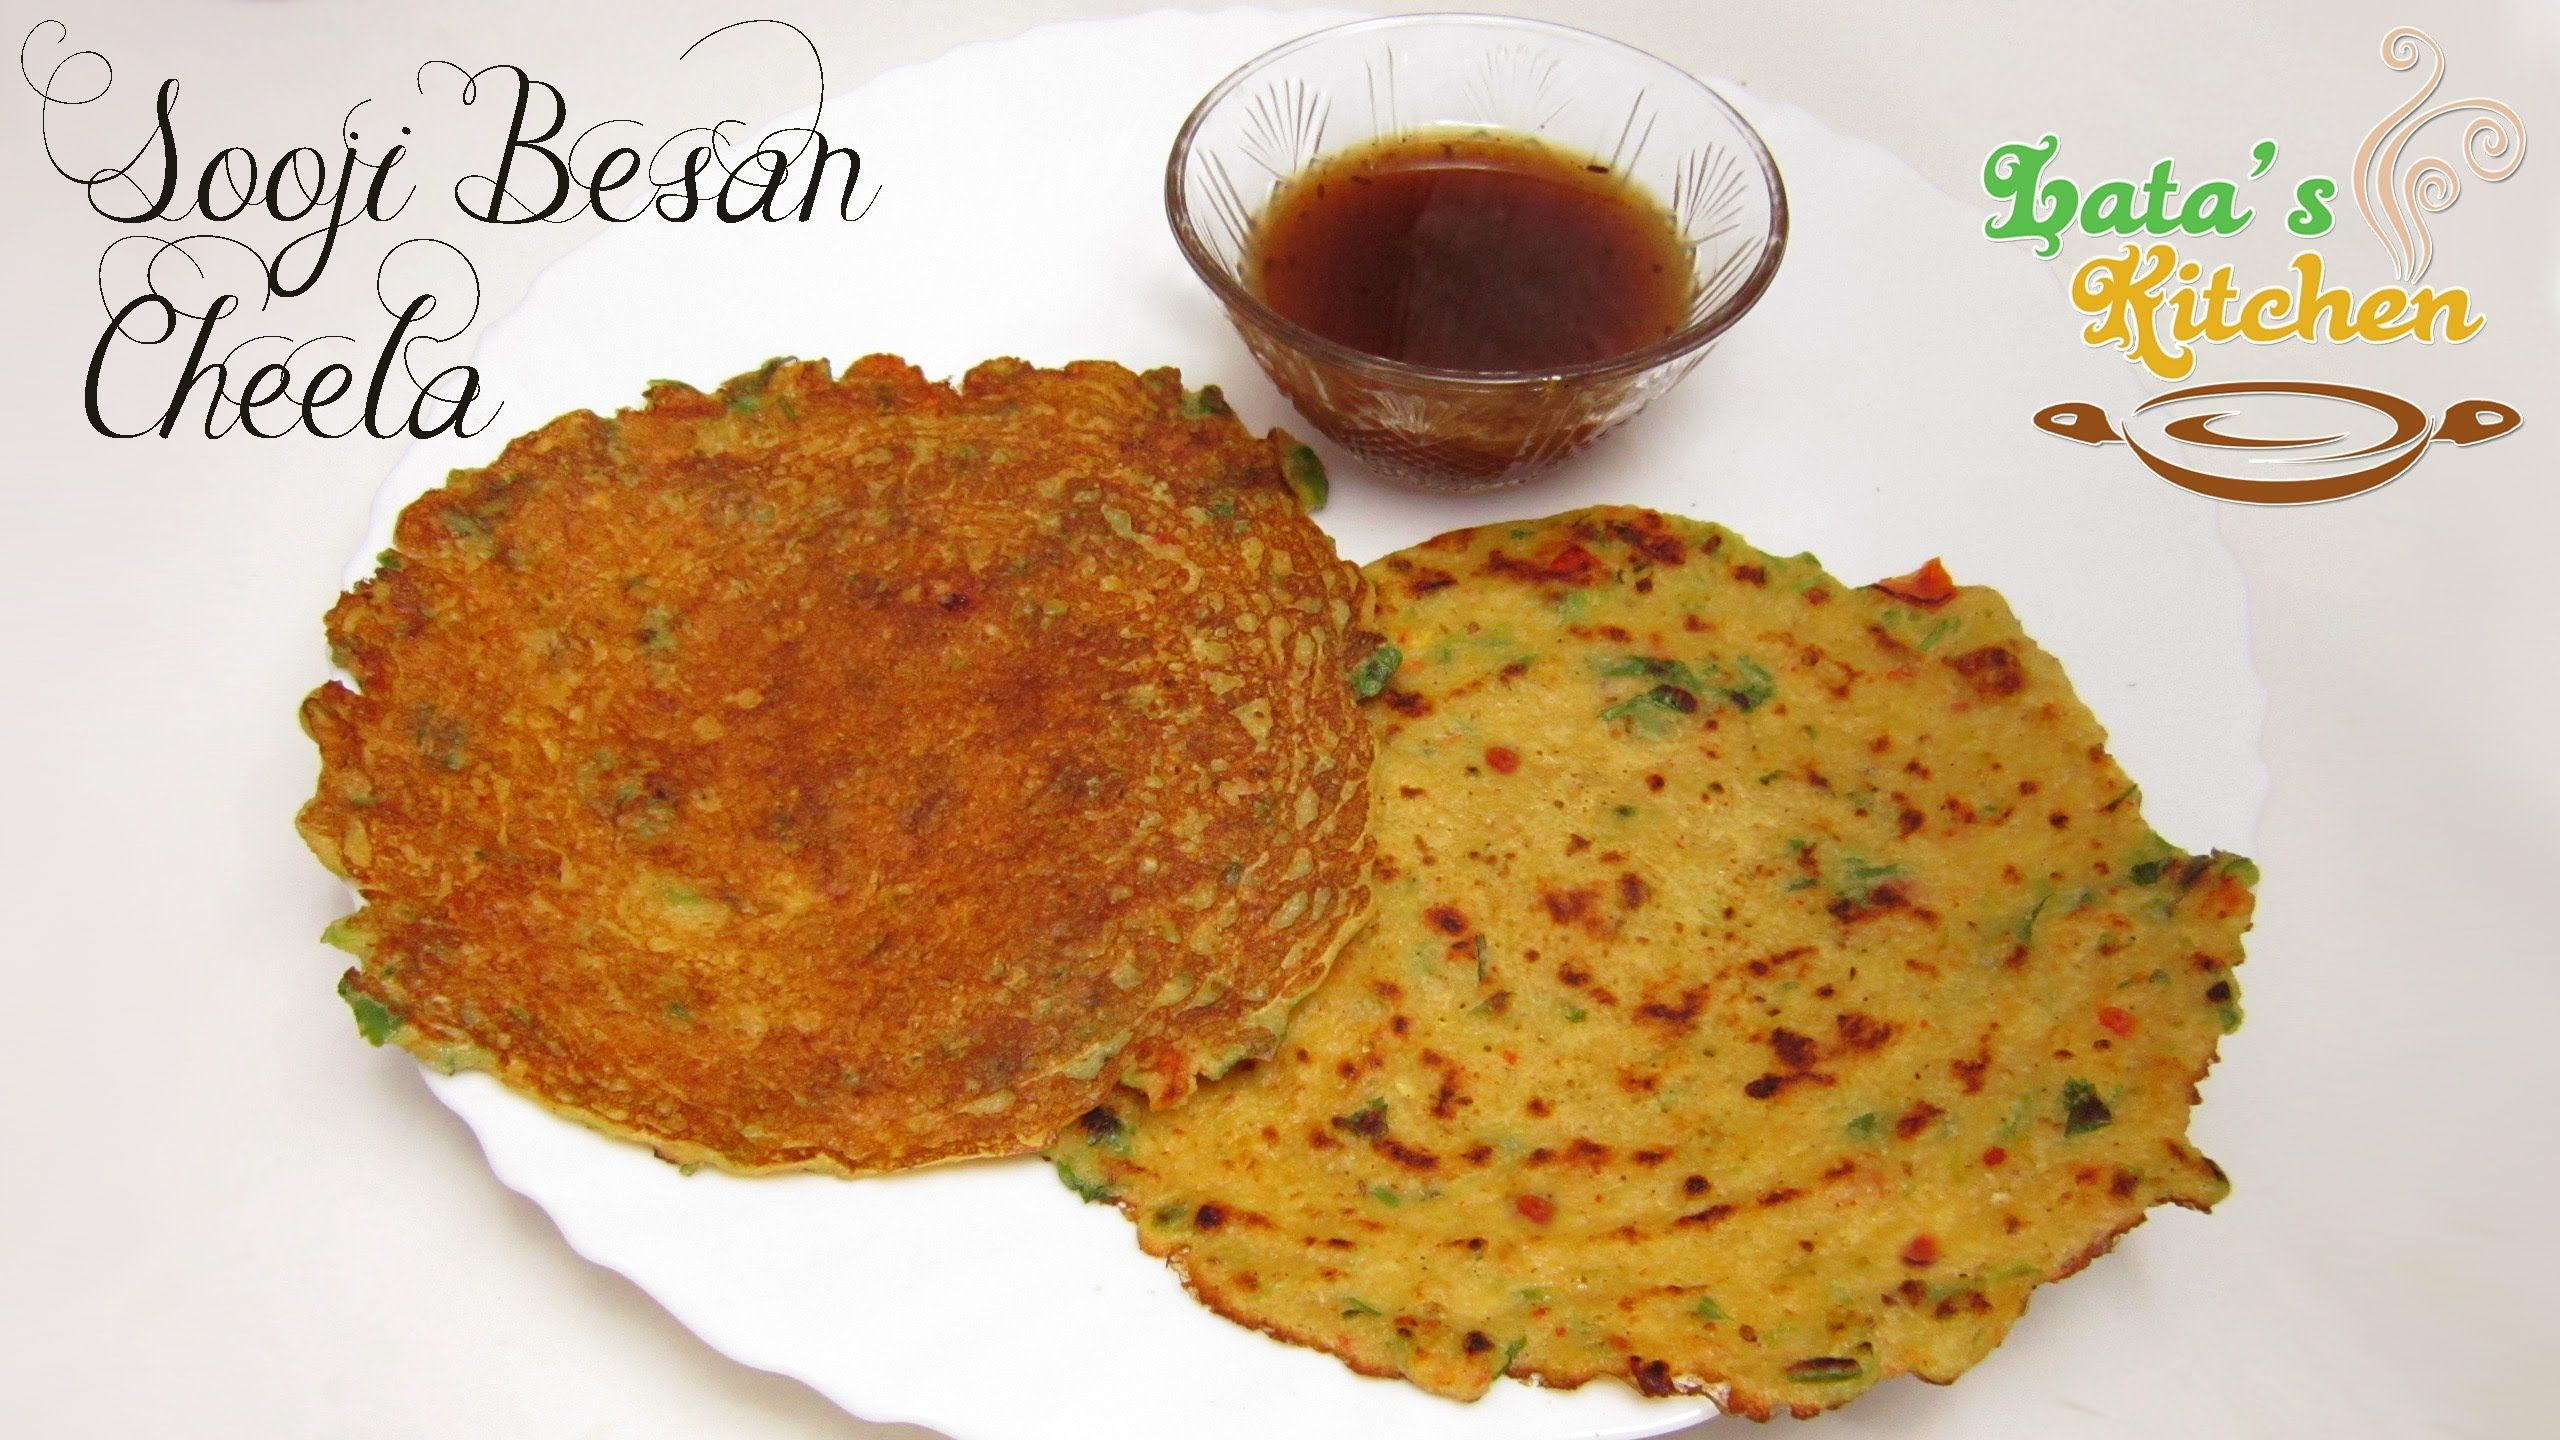 Sooji besan cheela recipe video indian vegetarian recipe in hindi sooji besan cheela recipe video indian vegetarian recipe in hindi with english subtitles forumfinder Image collections